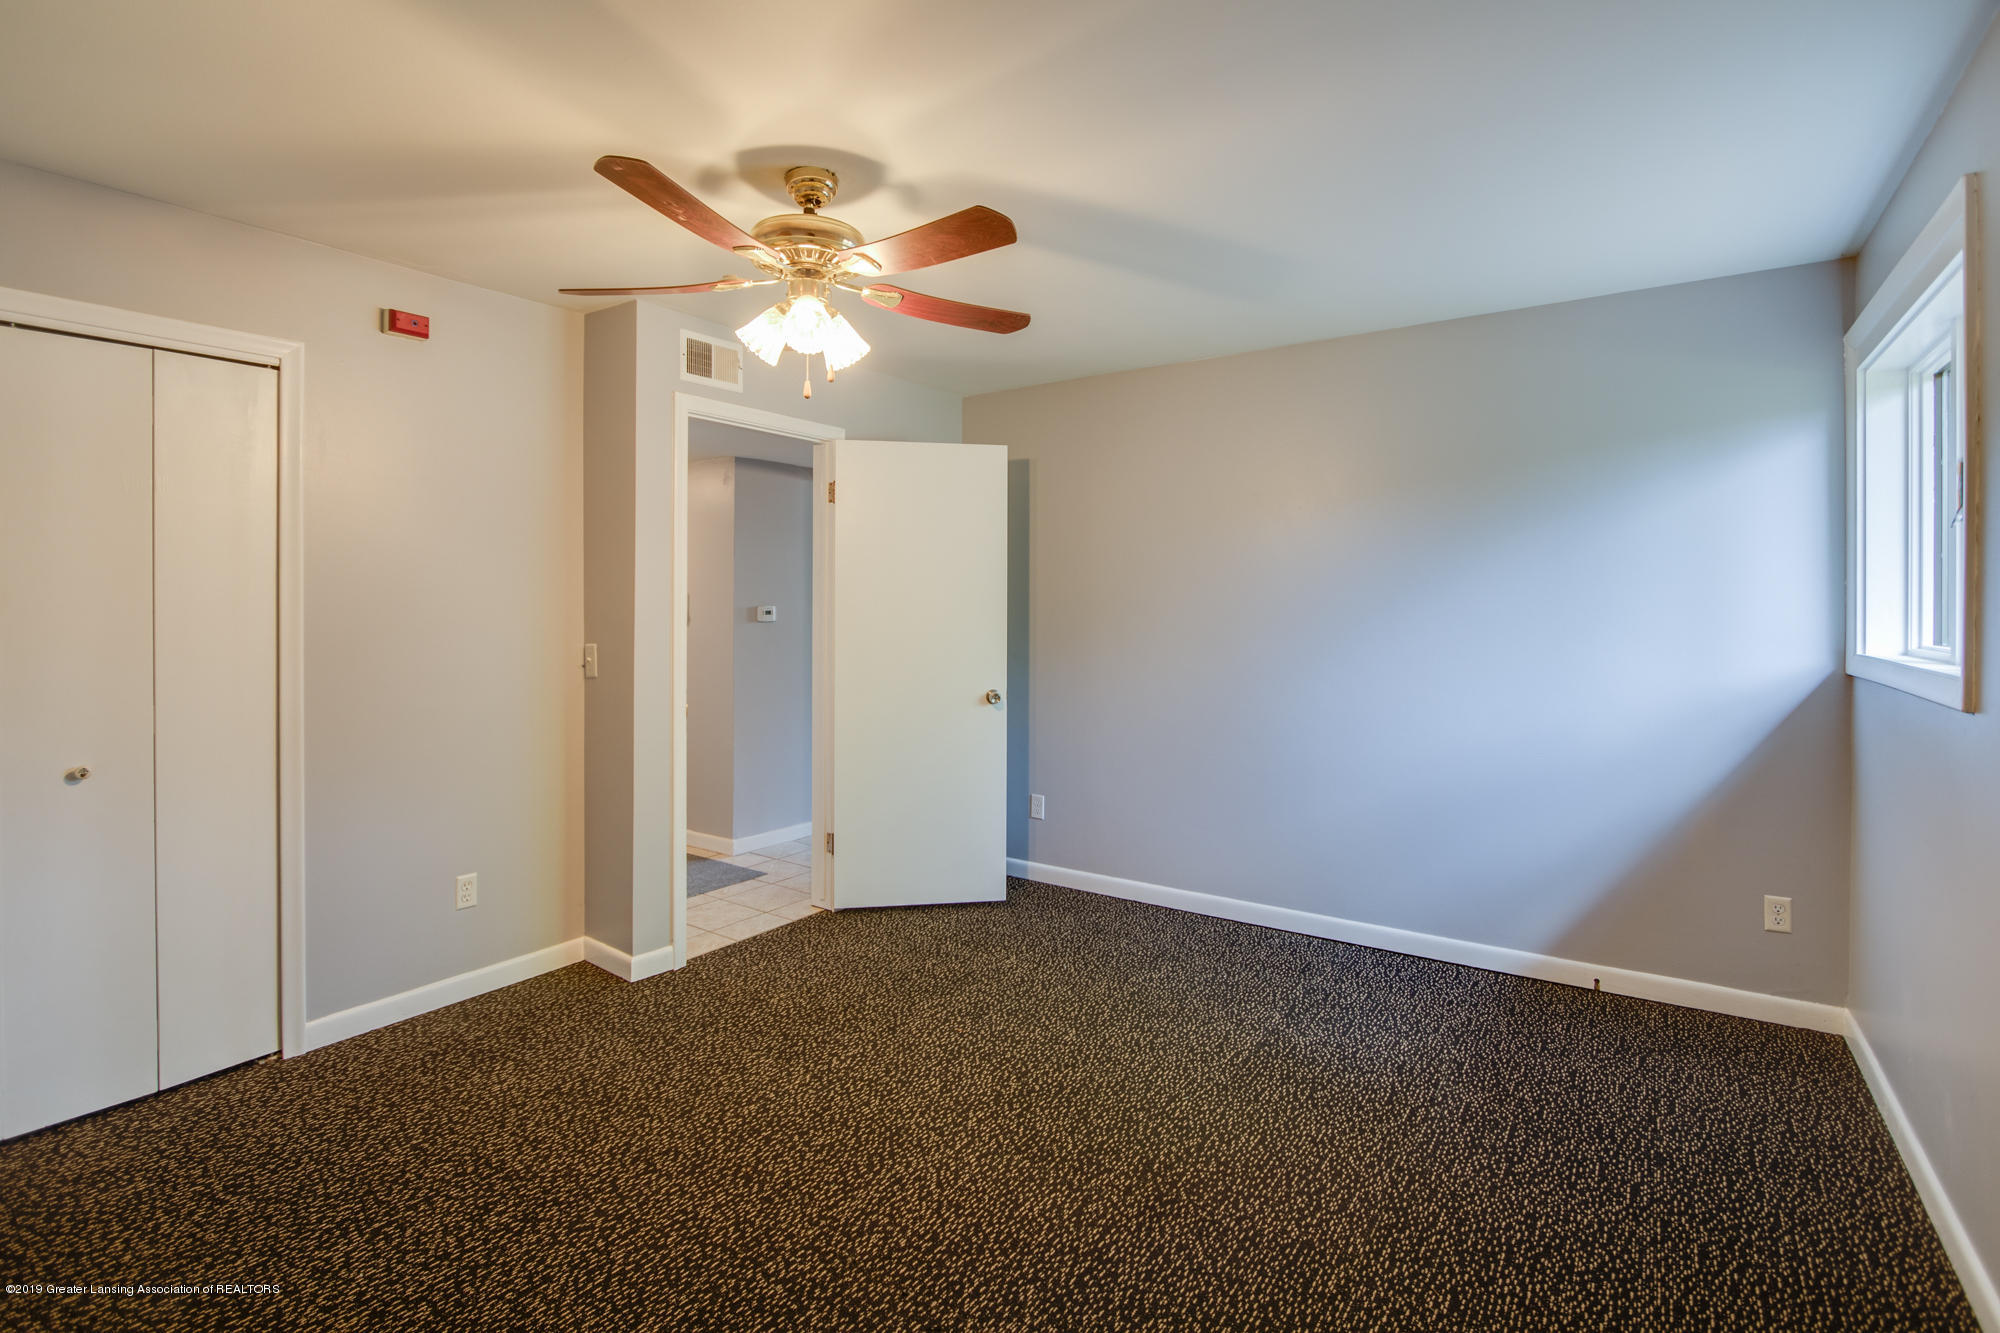 500 Woodingham Dr APT 2 - 500_Woodingham_JEFF-13 - 13